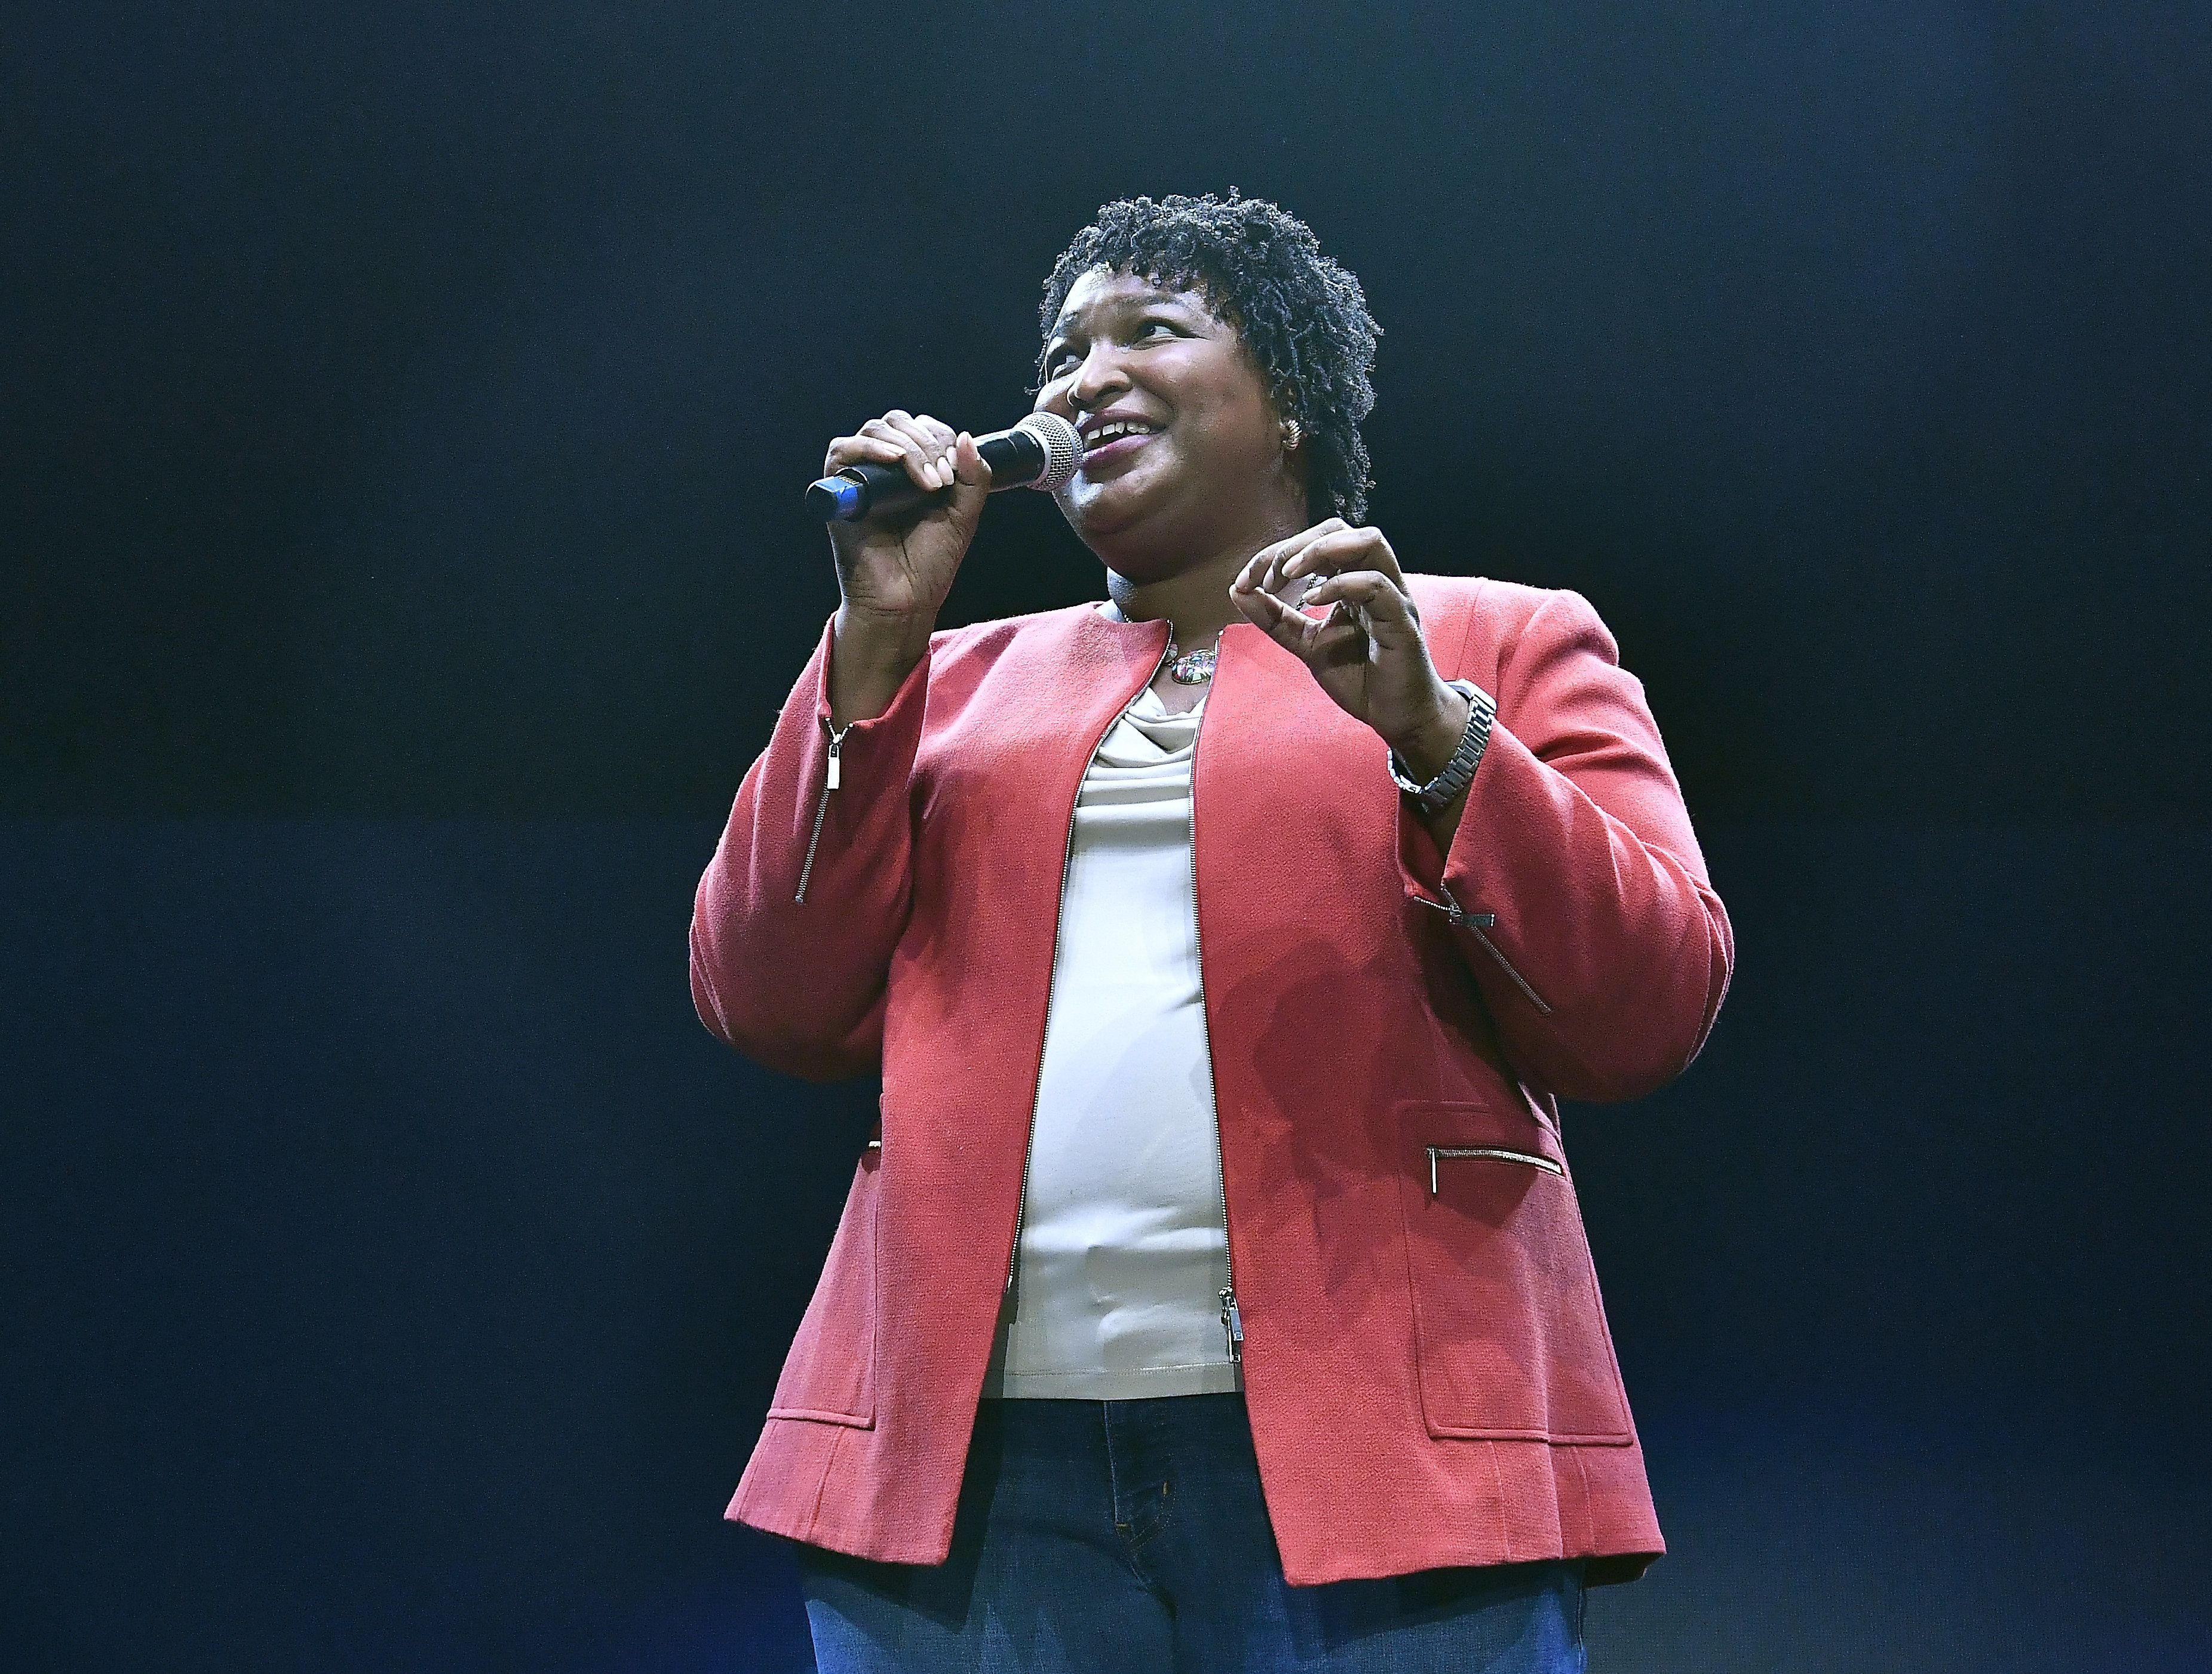 The ACLU's ad seeks to remind voters of Stacey Abrams' work with popular GOP Gov. Nathan Deal.